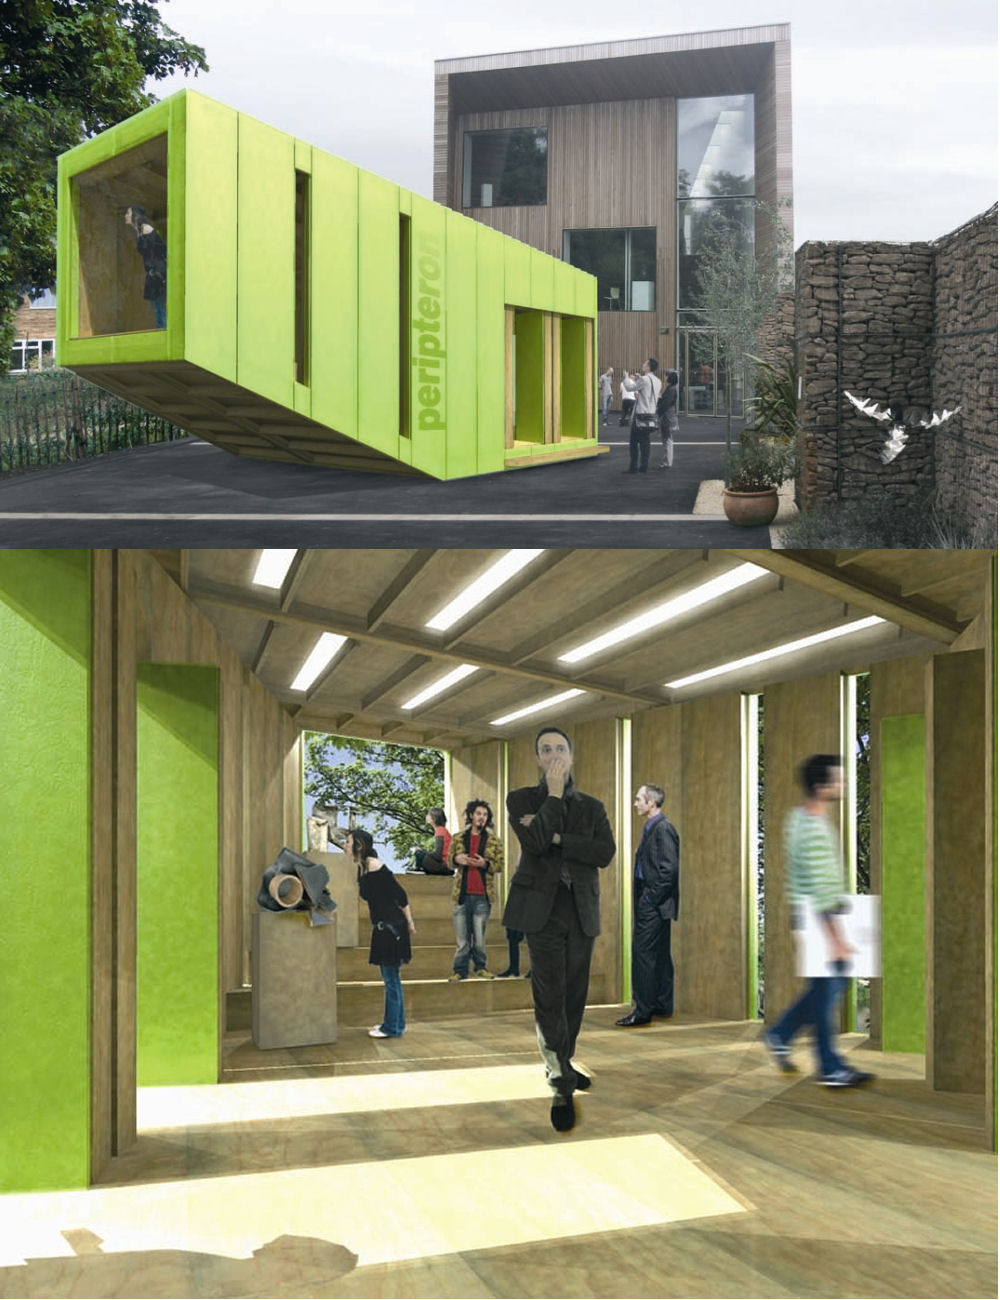 design-competition-for-the-art-fund-pavilion-which-will-serve-as-a